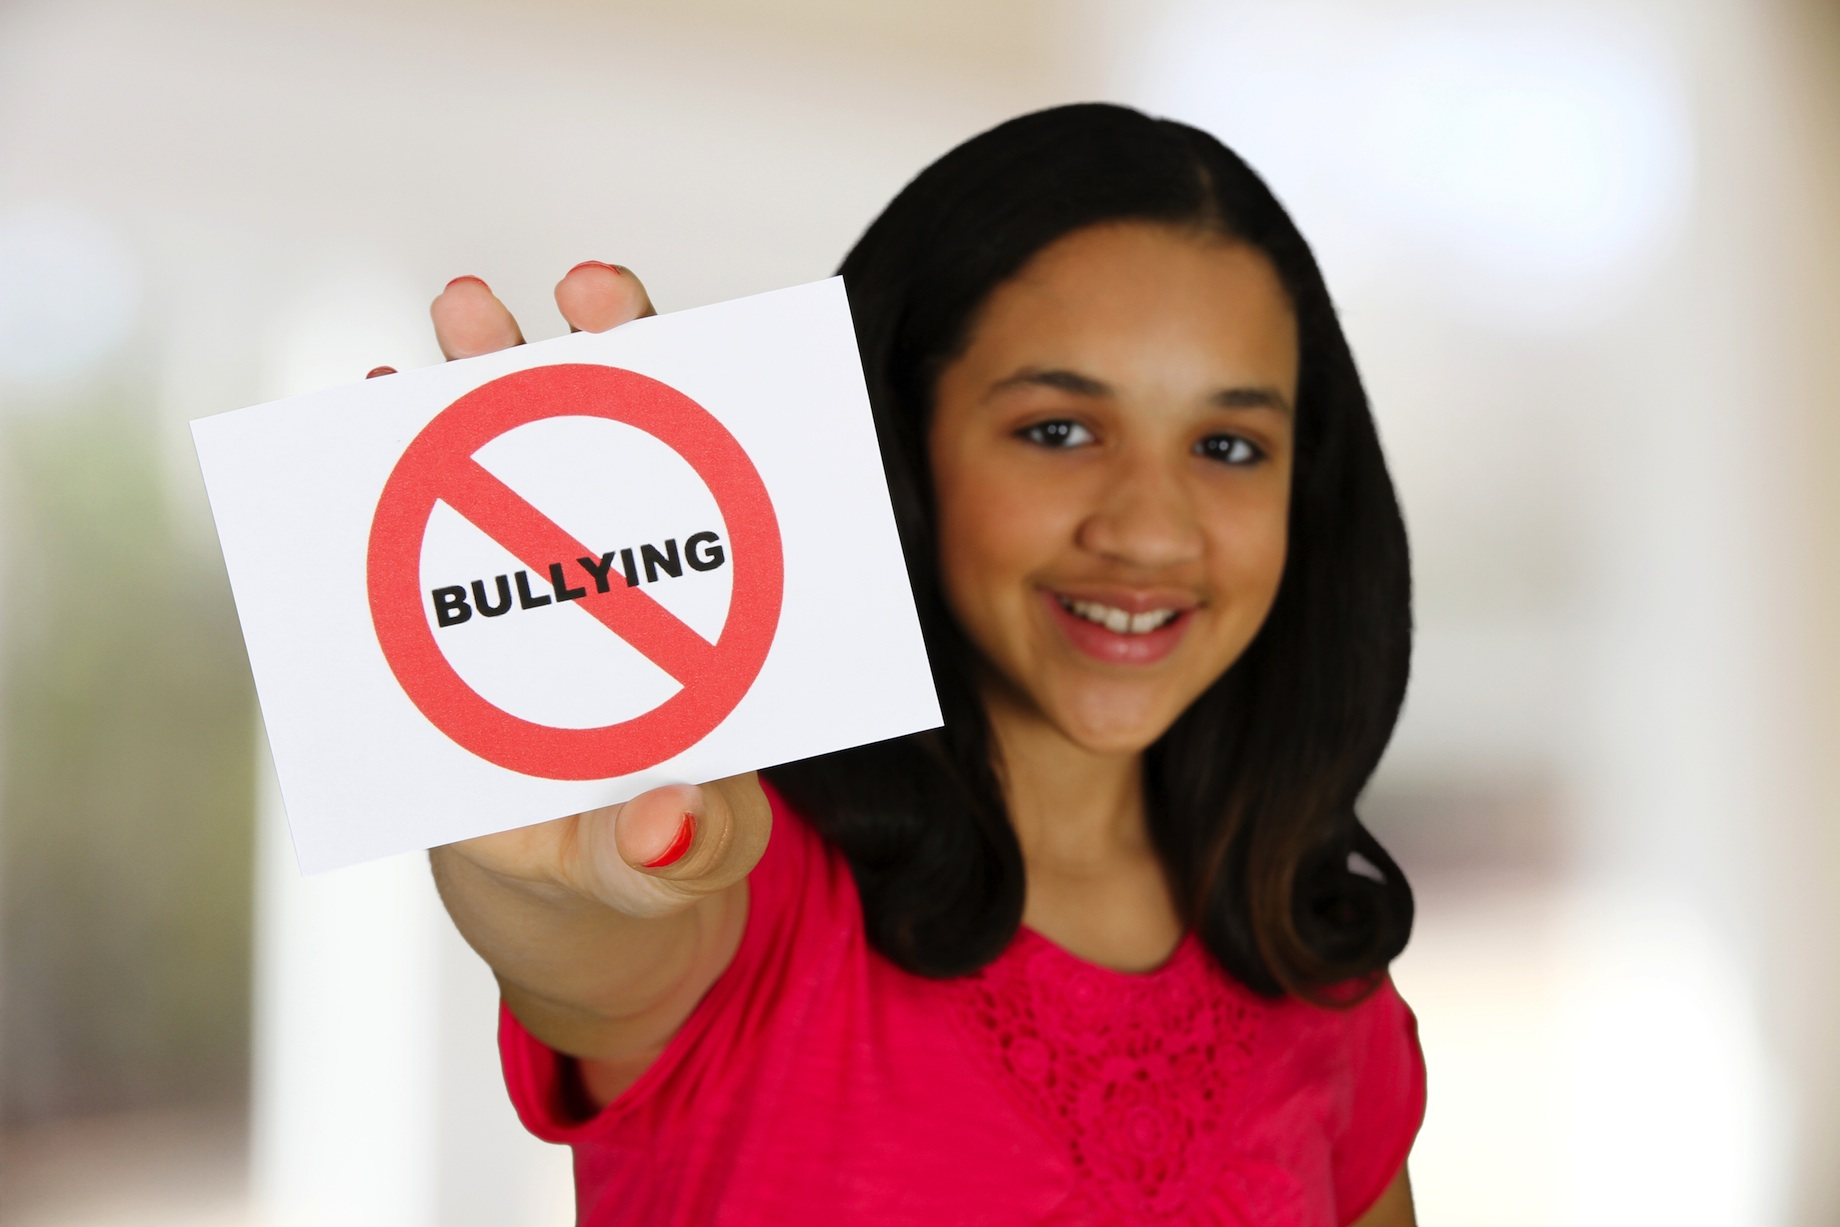 Let's stop bullying. To This Day Project